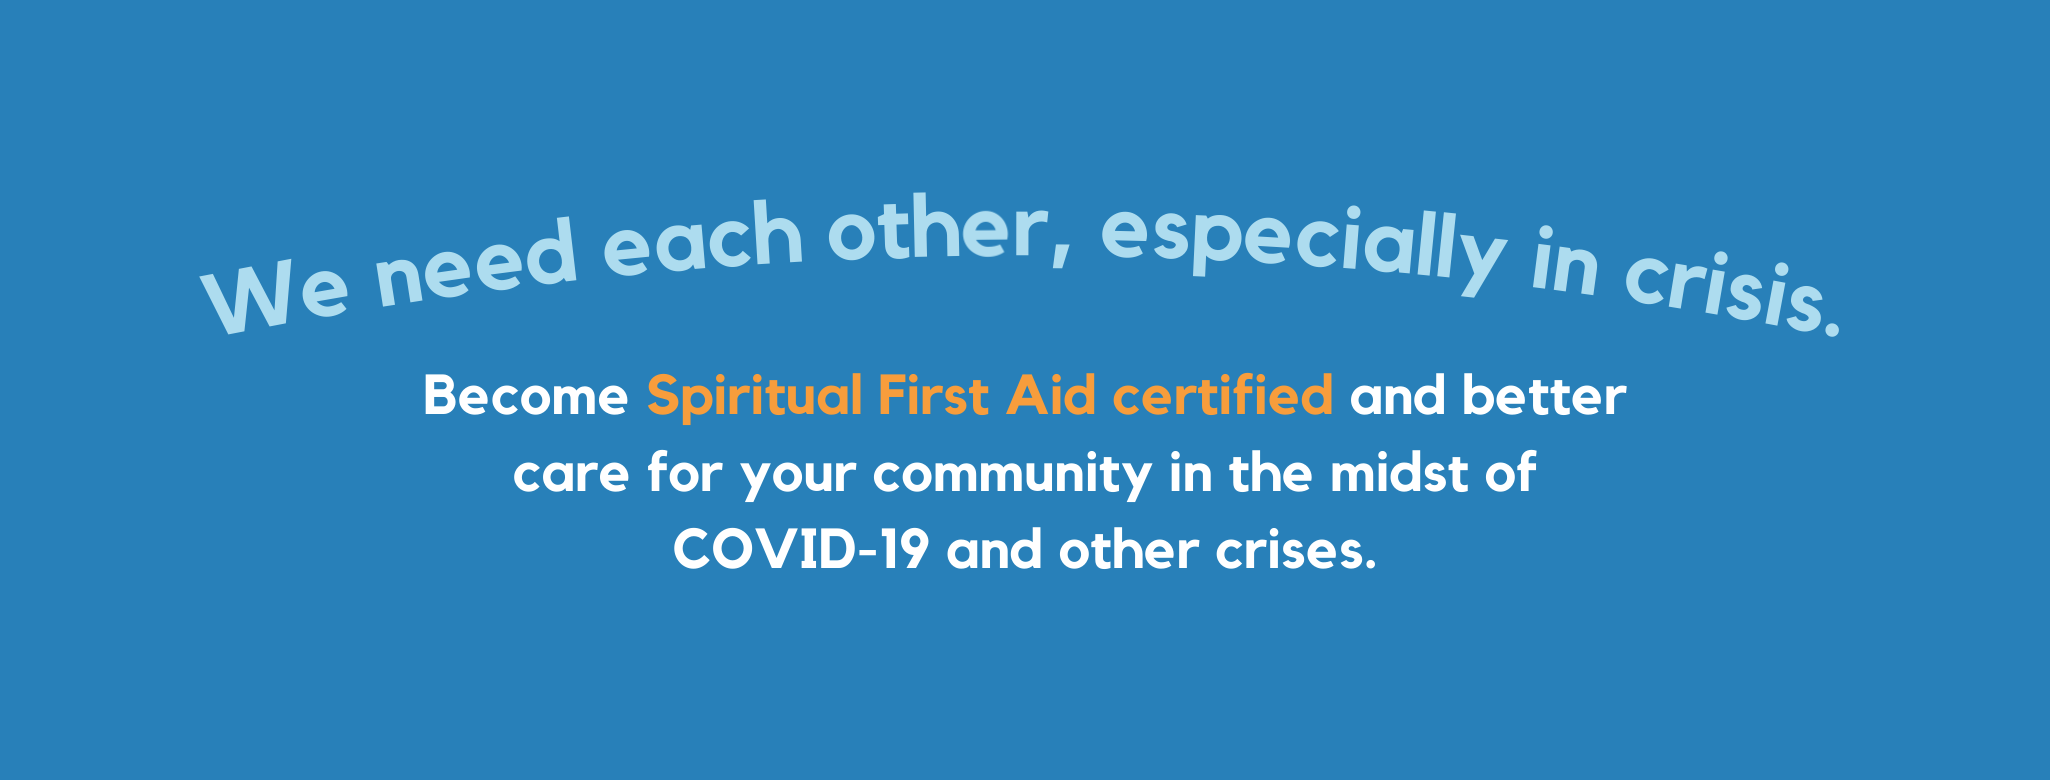 We need each other, especially in crisis. Become Spiritual First Aid certified and better care for your community in the midst of COVID-19 and other crises.